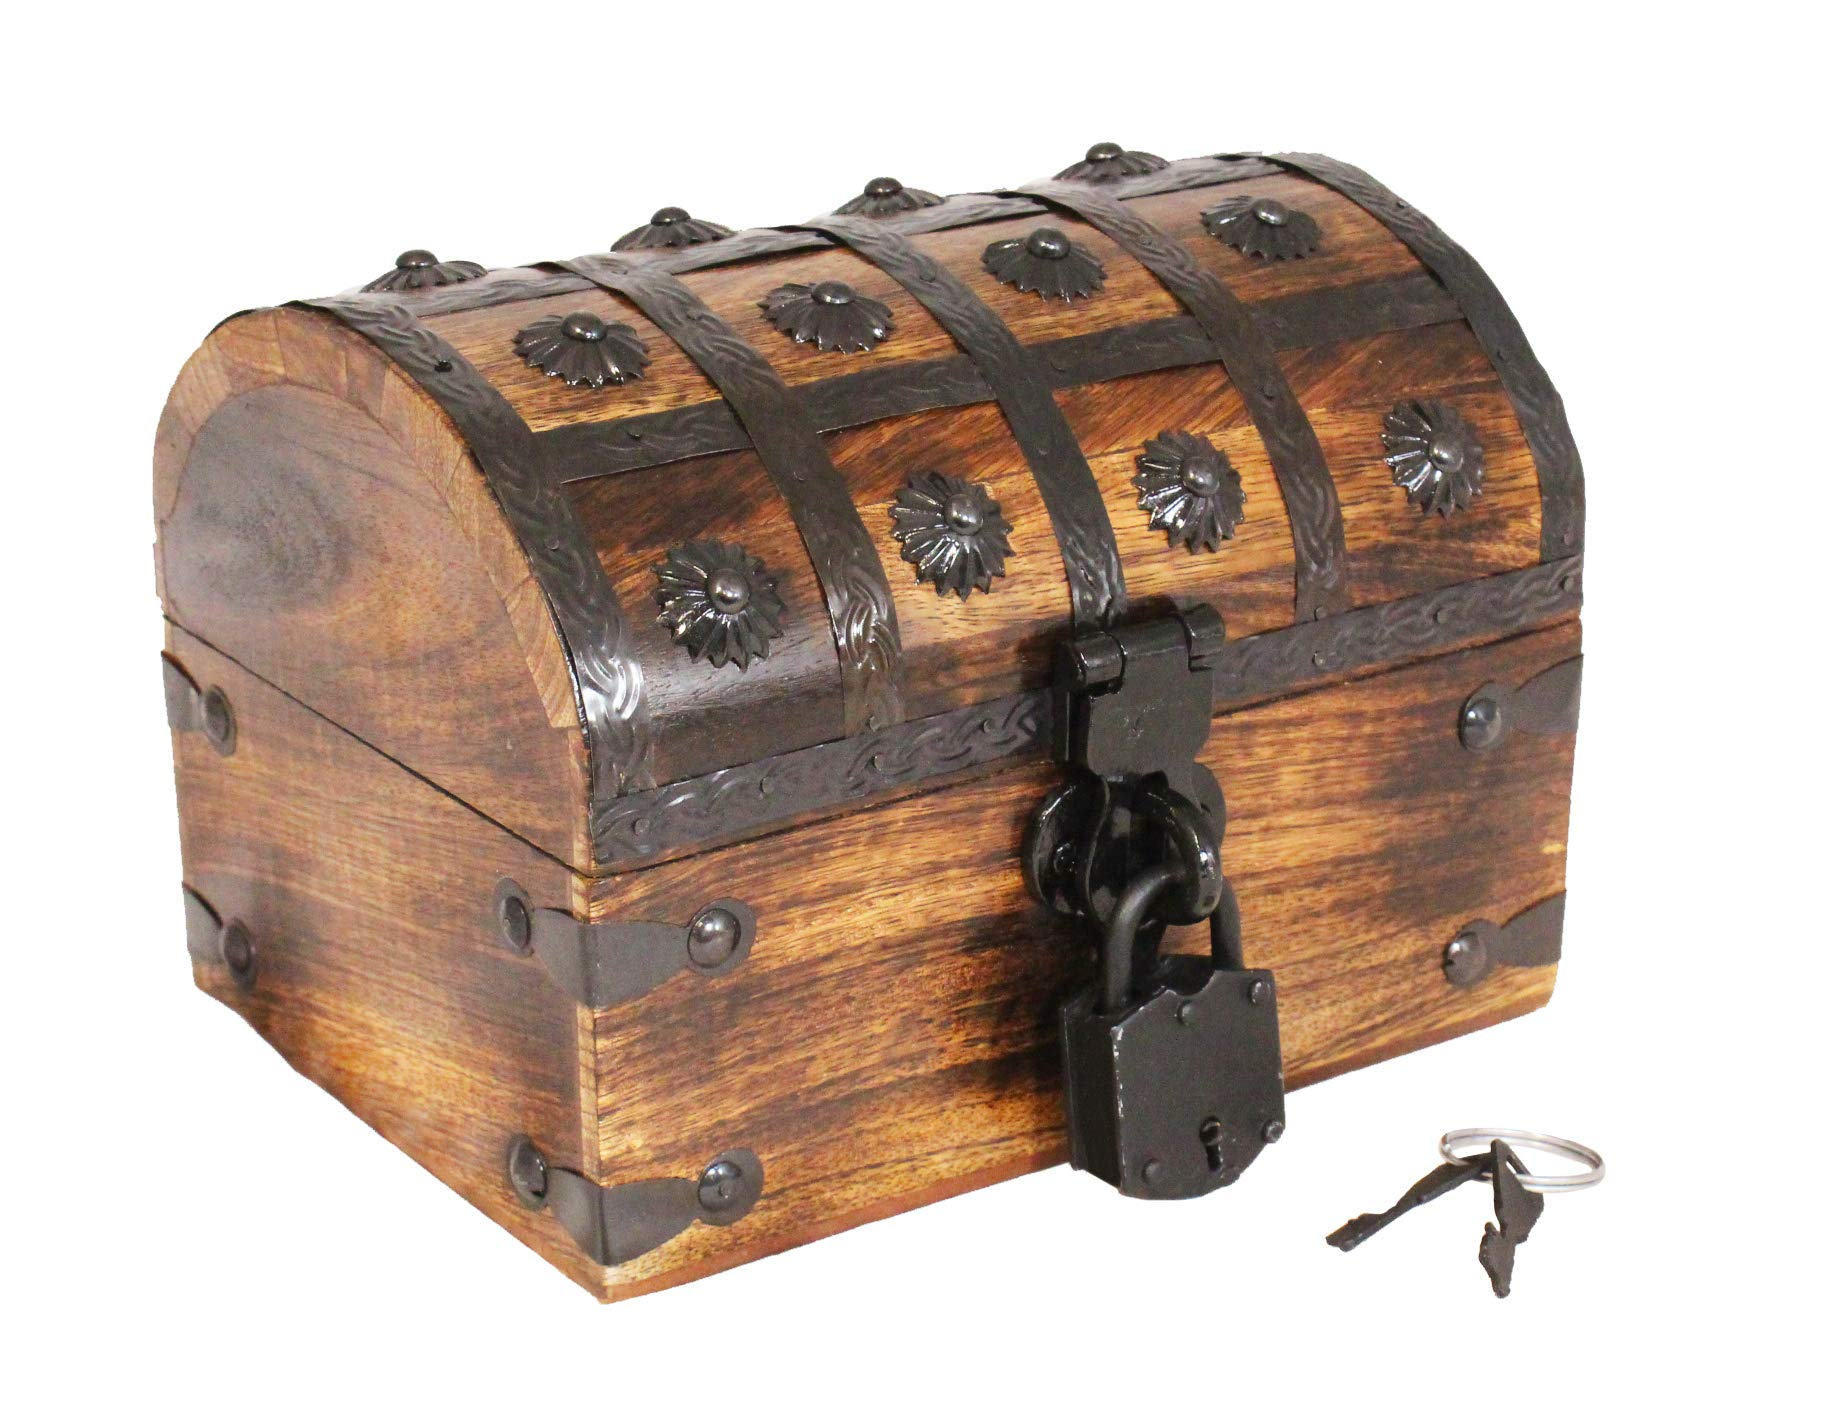 Well Pack Box Pirate Treasure Chest Wooden Iron Lock Skeleton Key Small 8 x 6 x 6 Wood Storage Decorative Keepsake Box by Well Pack Box